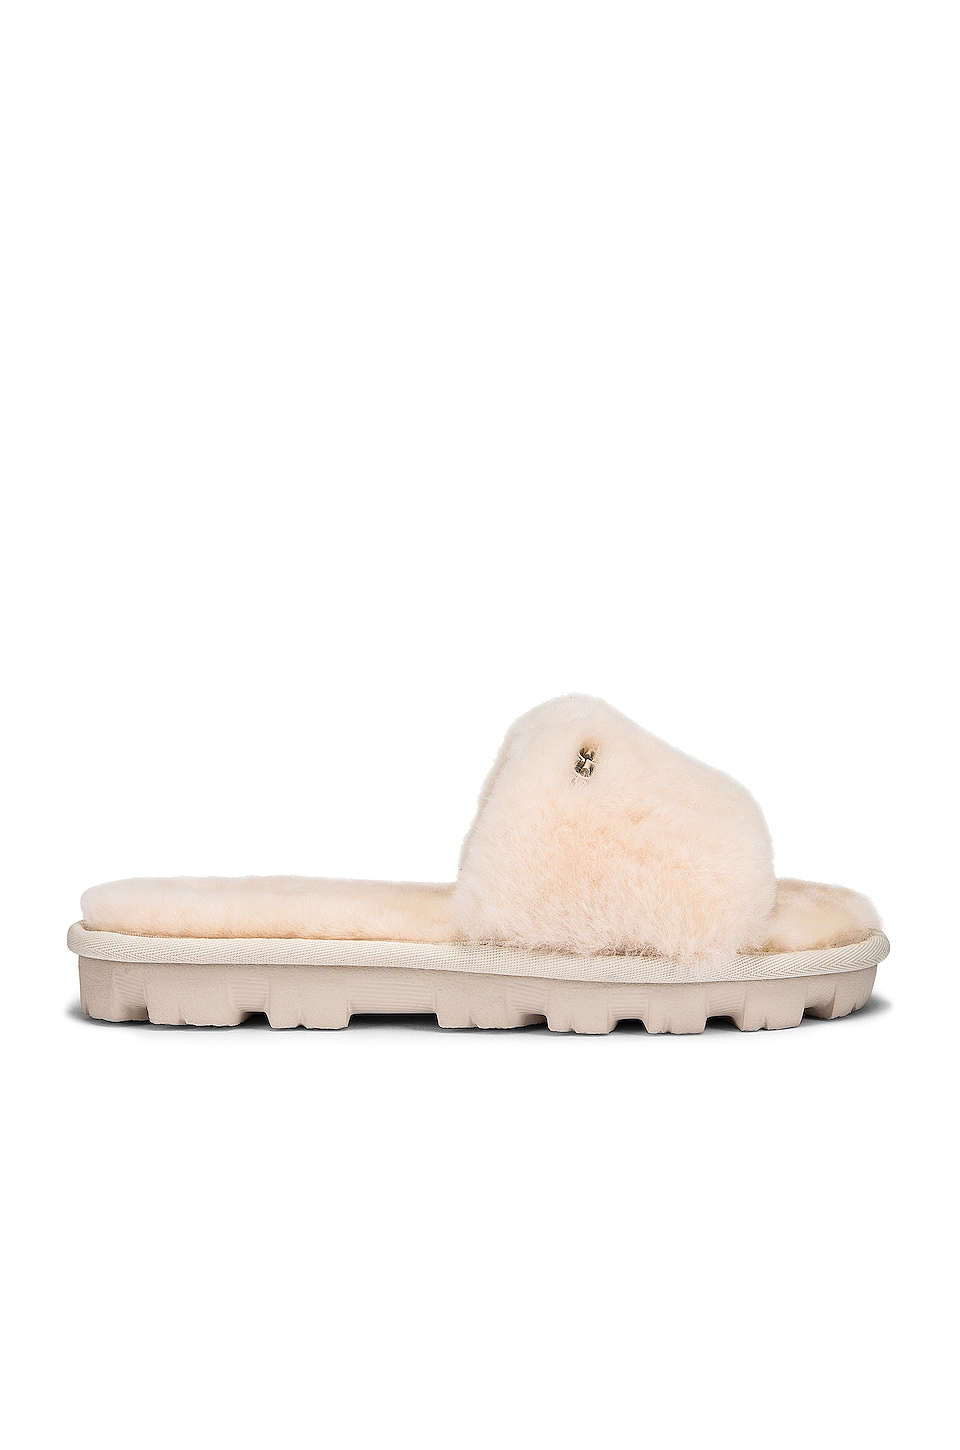 UGG Cozette Slipper in Natural